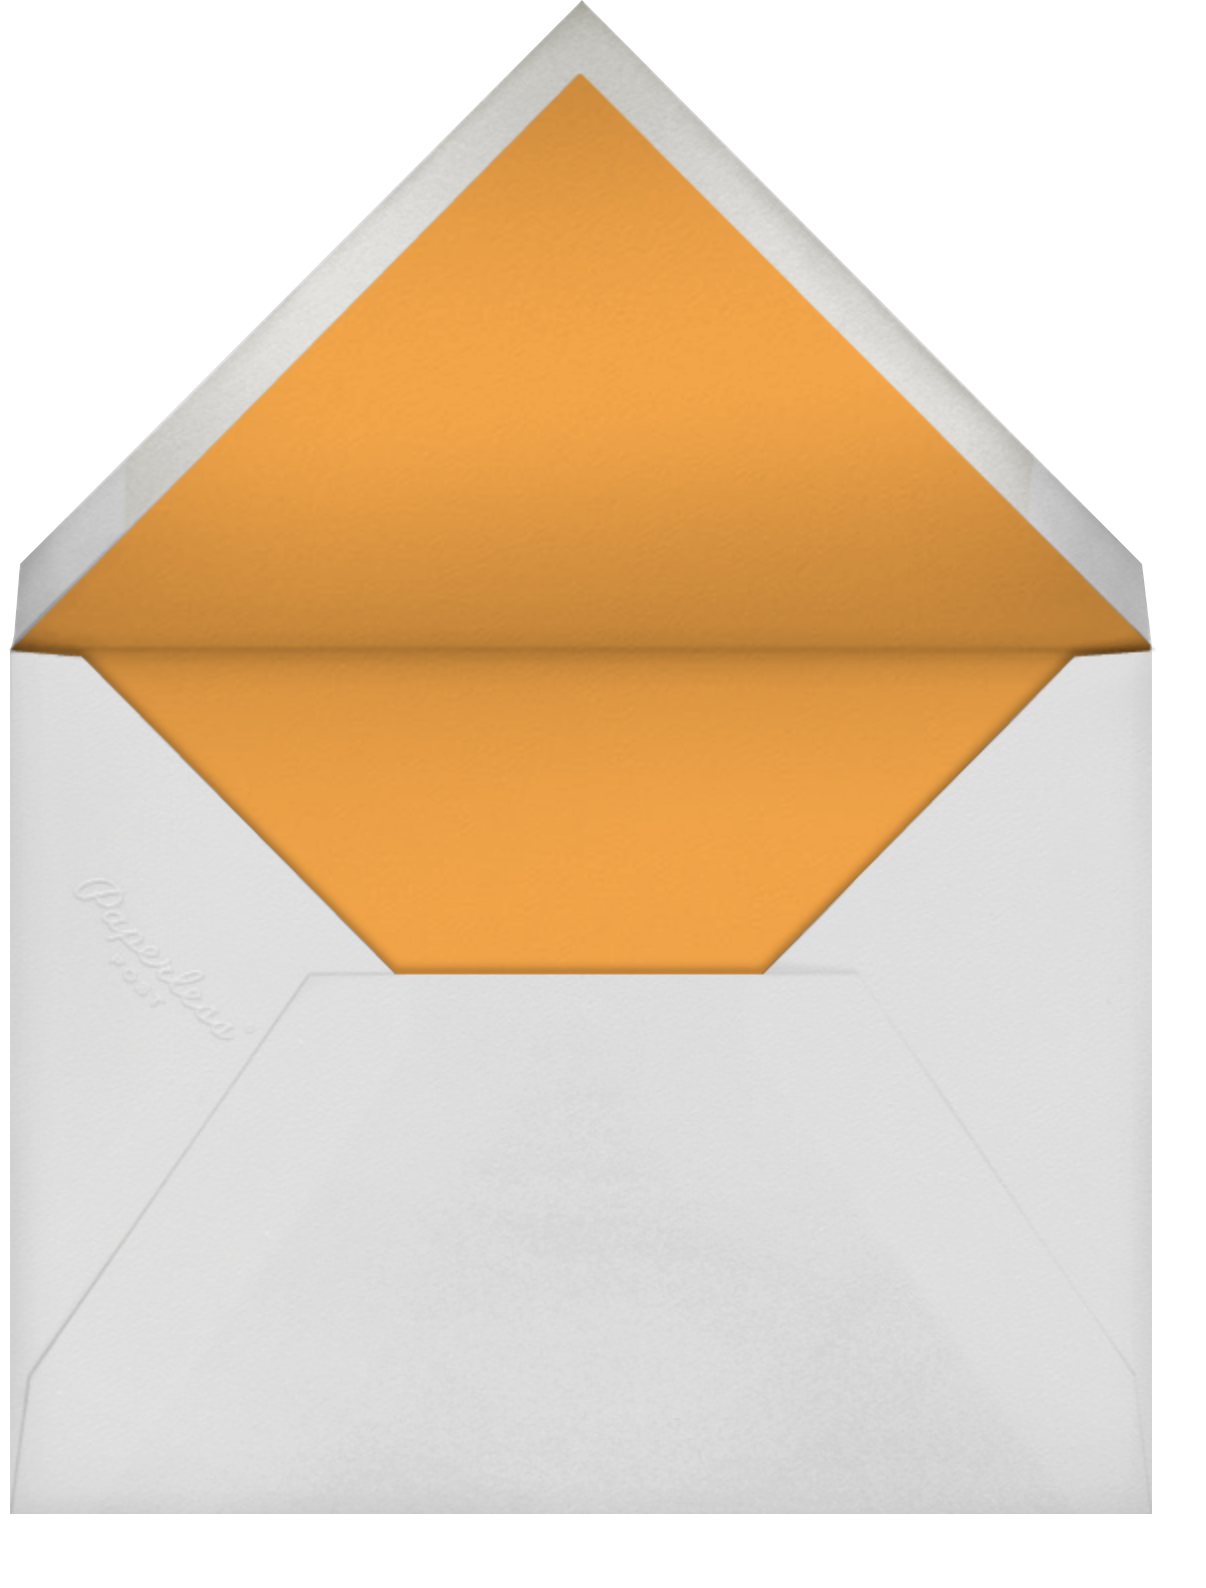 Side Photo Triangle - Paperless Post - Graduation party - envelope back